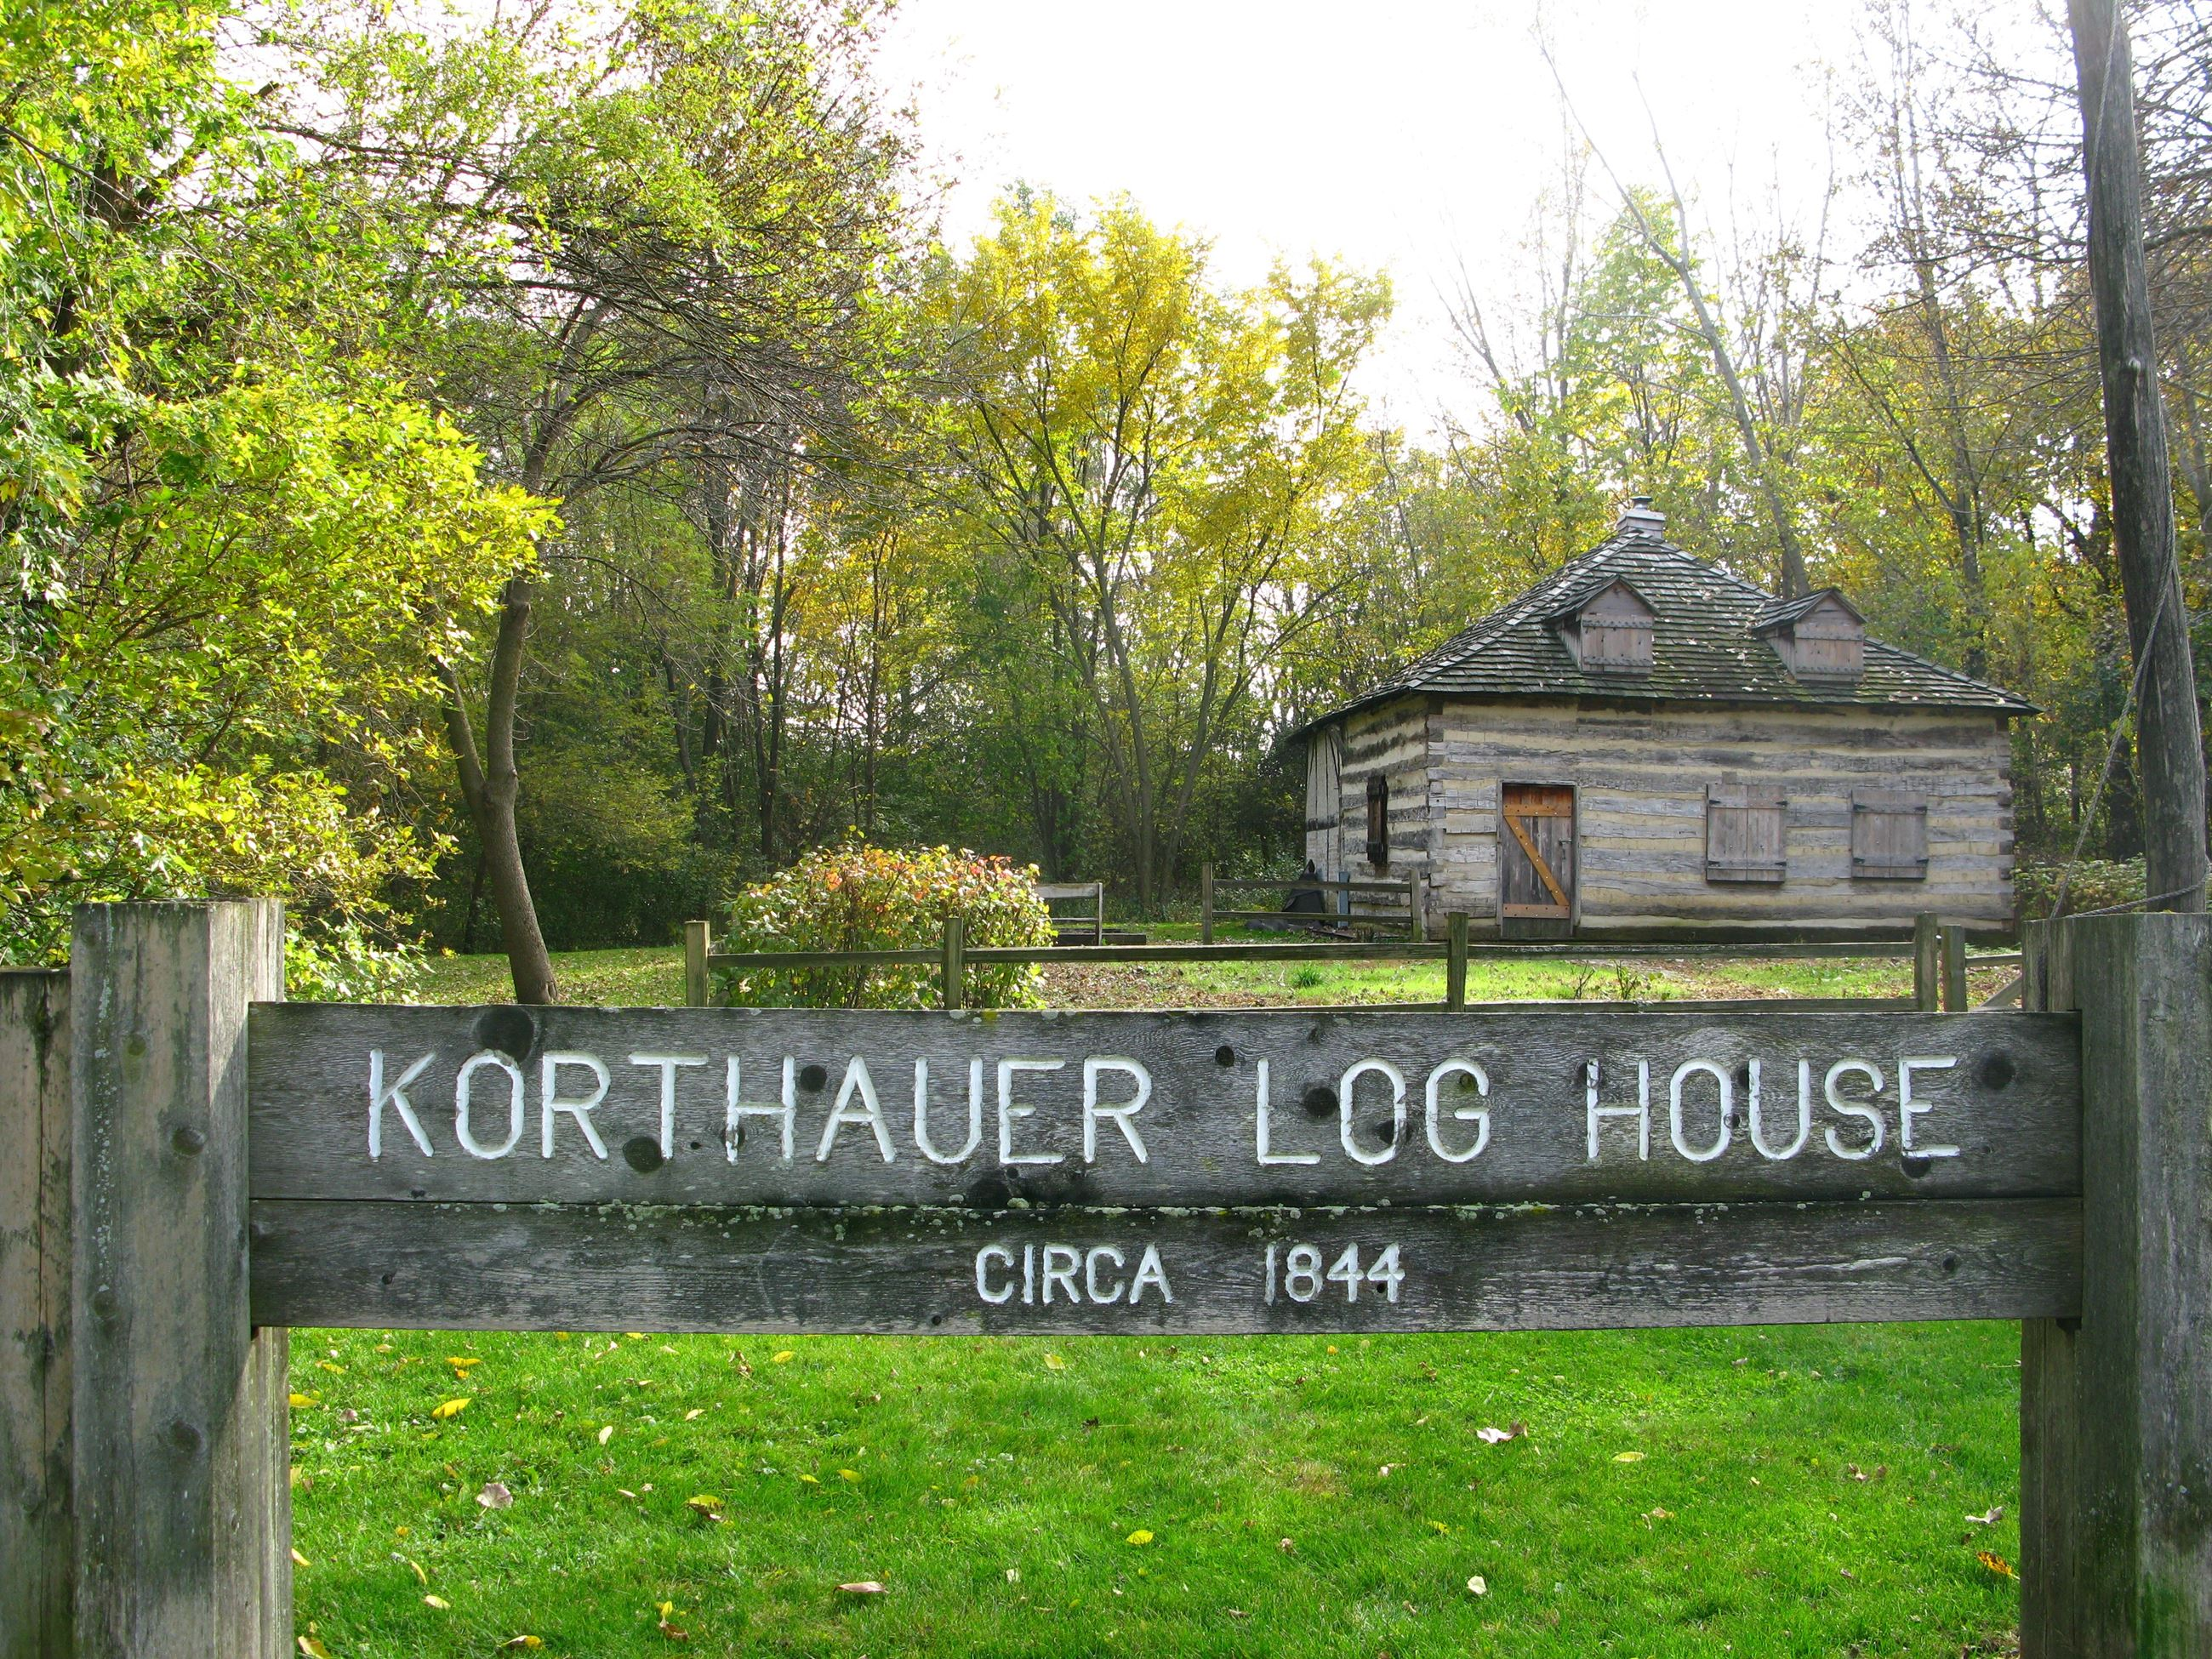 Korthauer Log House